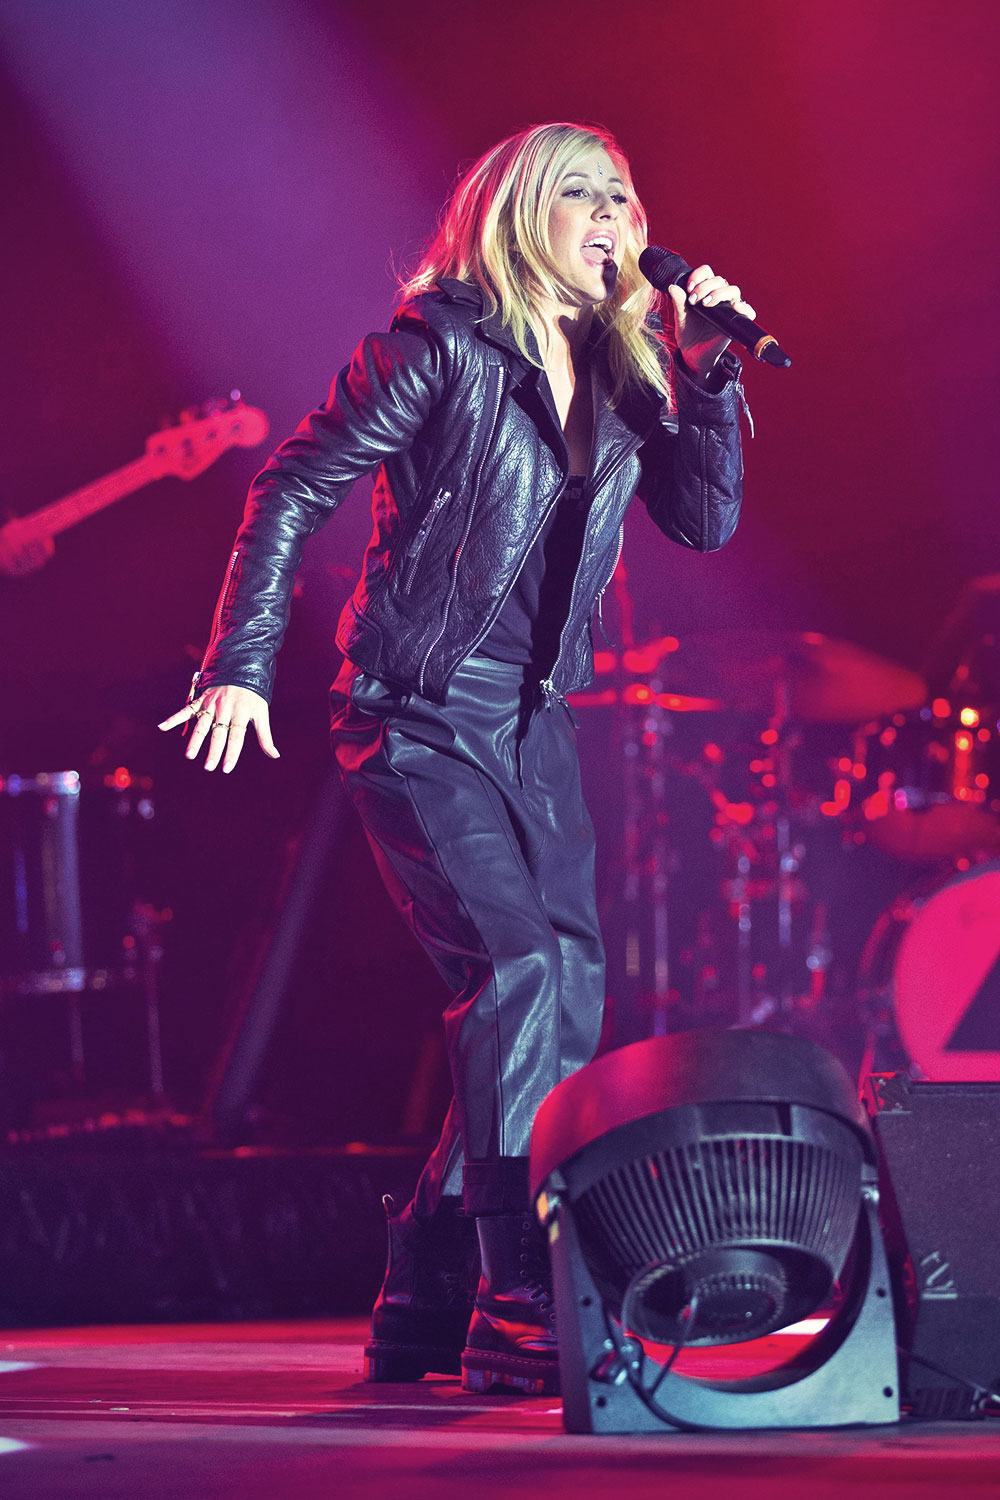 Ellie Goulding performs at Sundown Festival